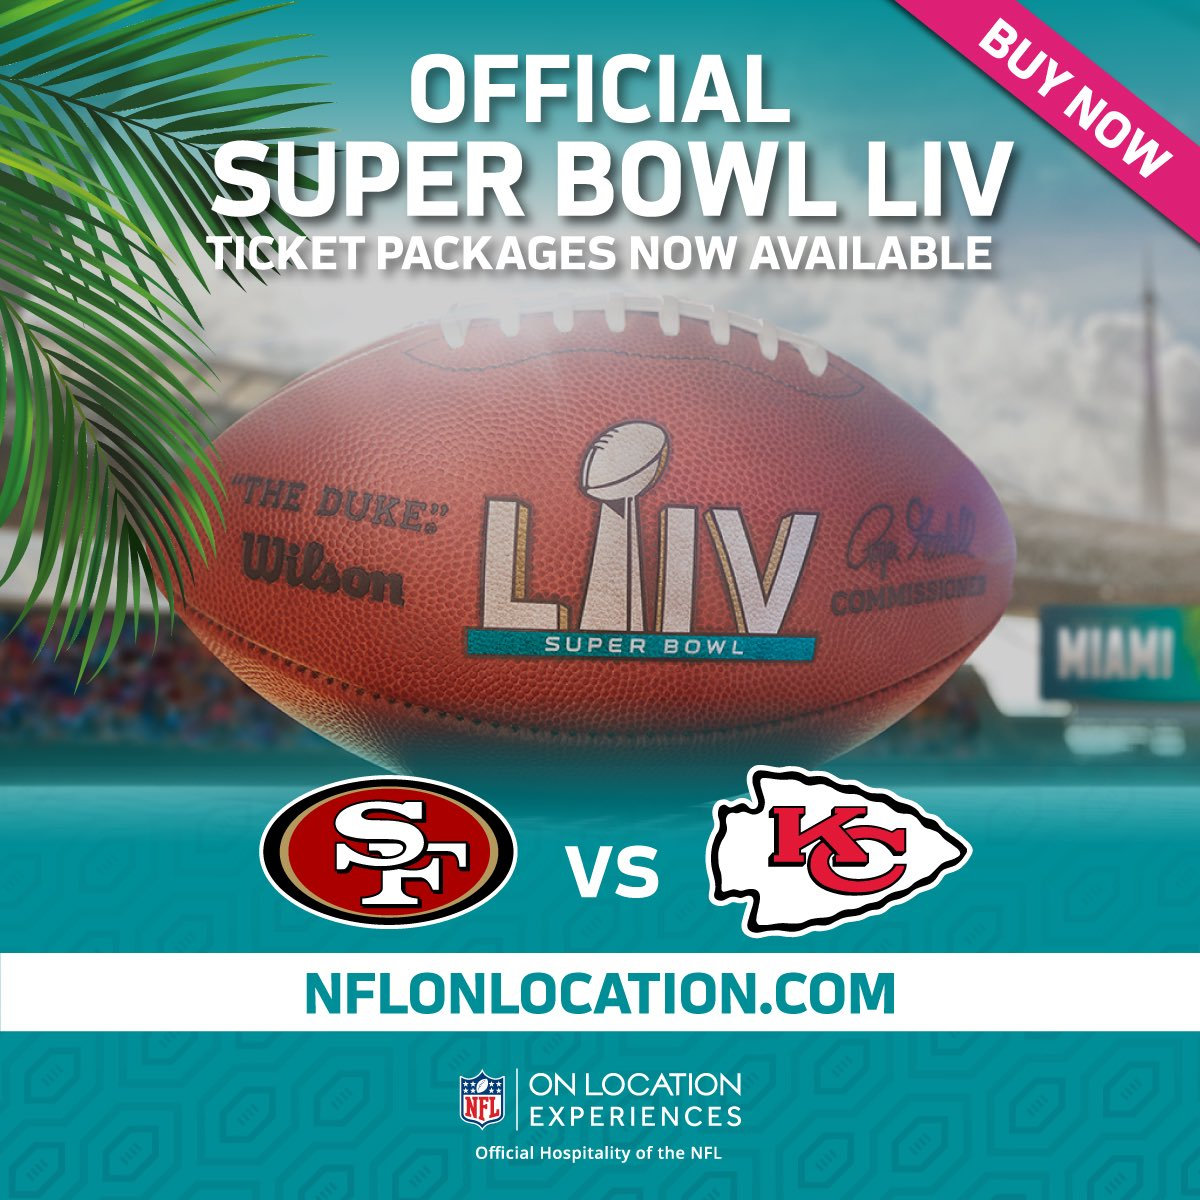 Two incredible teams. One awesome city. Don't miss your chance to join me and @NFLOnLocation for the Super Bowl LIV Experience of a lifetime in Miami! #SB54OnLocation Official Ticket Packages are going fast. Book yours today ➡️ bit.ly/2stq2Ef